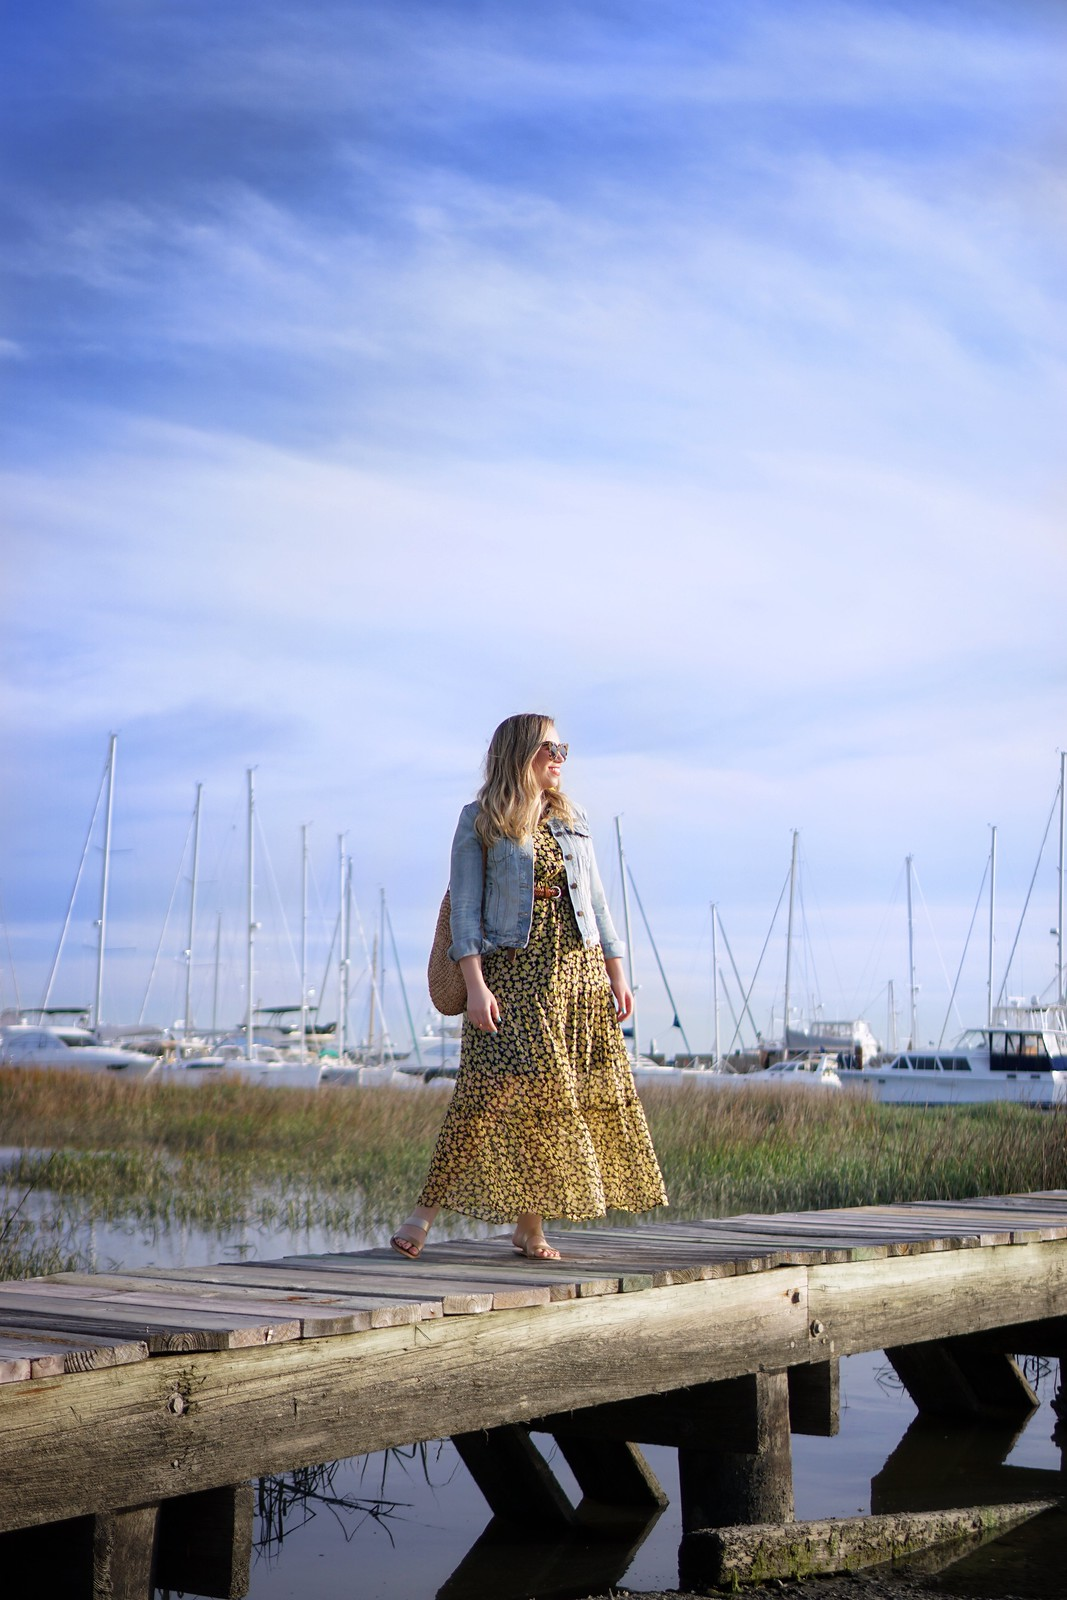 Who What Wear Yellow Printed Maxi Dress | Charleston Marina | First Timer's Guide to 3 Days in Charleston South Carolina | What to do in Charleston | Charleston Travel Guide | Best Things to do in Charleston | Best Places to visit in Charleston | Summer Outfit Ideas | Charleston Outfit Ideas | Best Outfits for Vacation | Charleston Packing List | Spring Outfit Ideas